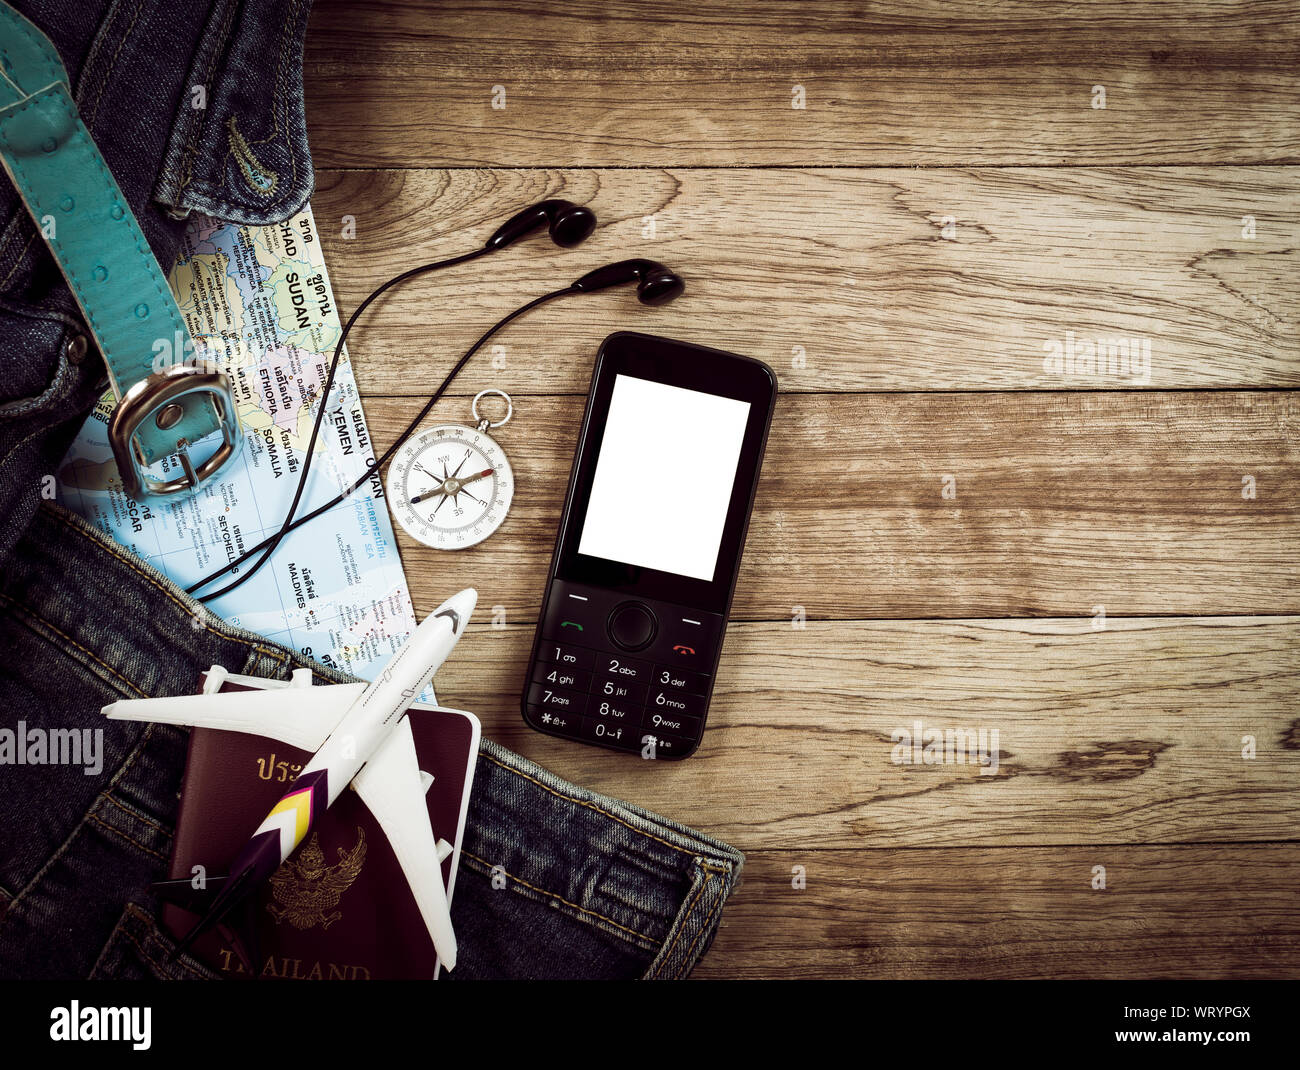 Travel concept, denim bag, pants, belt, map, earphones, compass and mobile phone on vintage wooden table Stock Photo